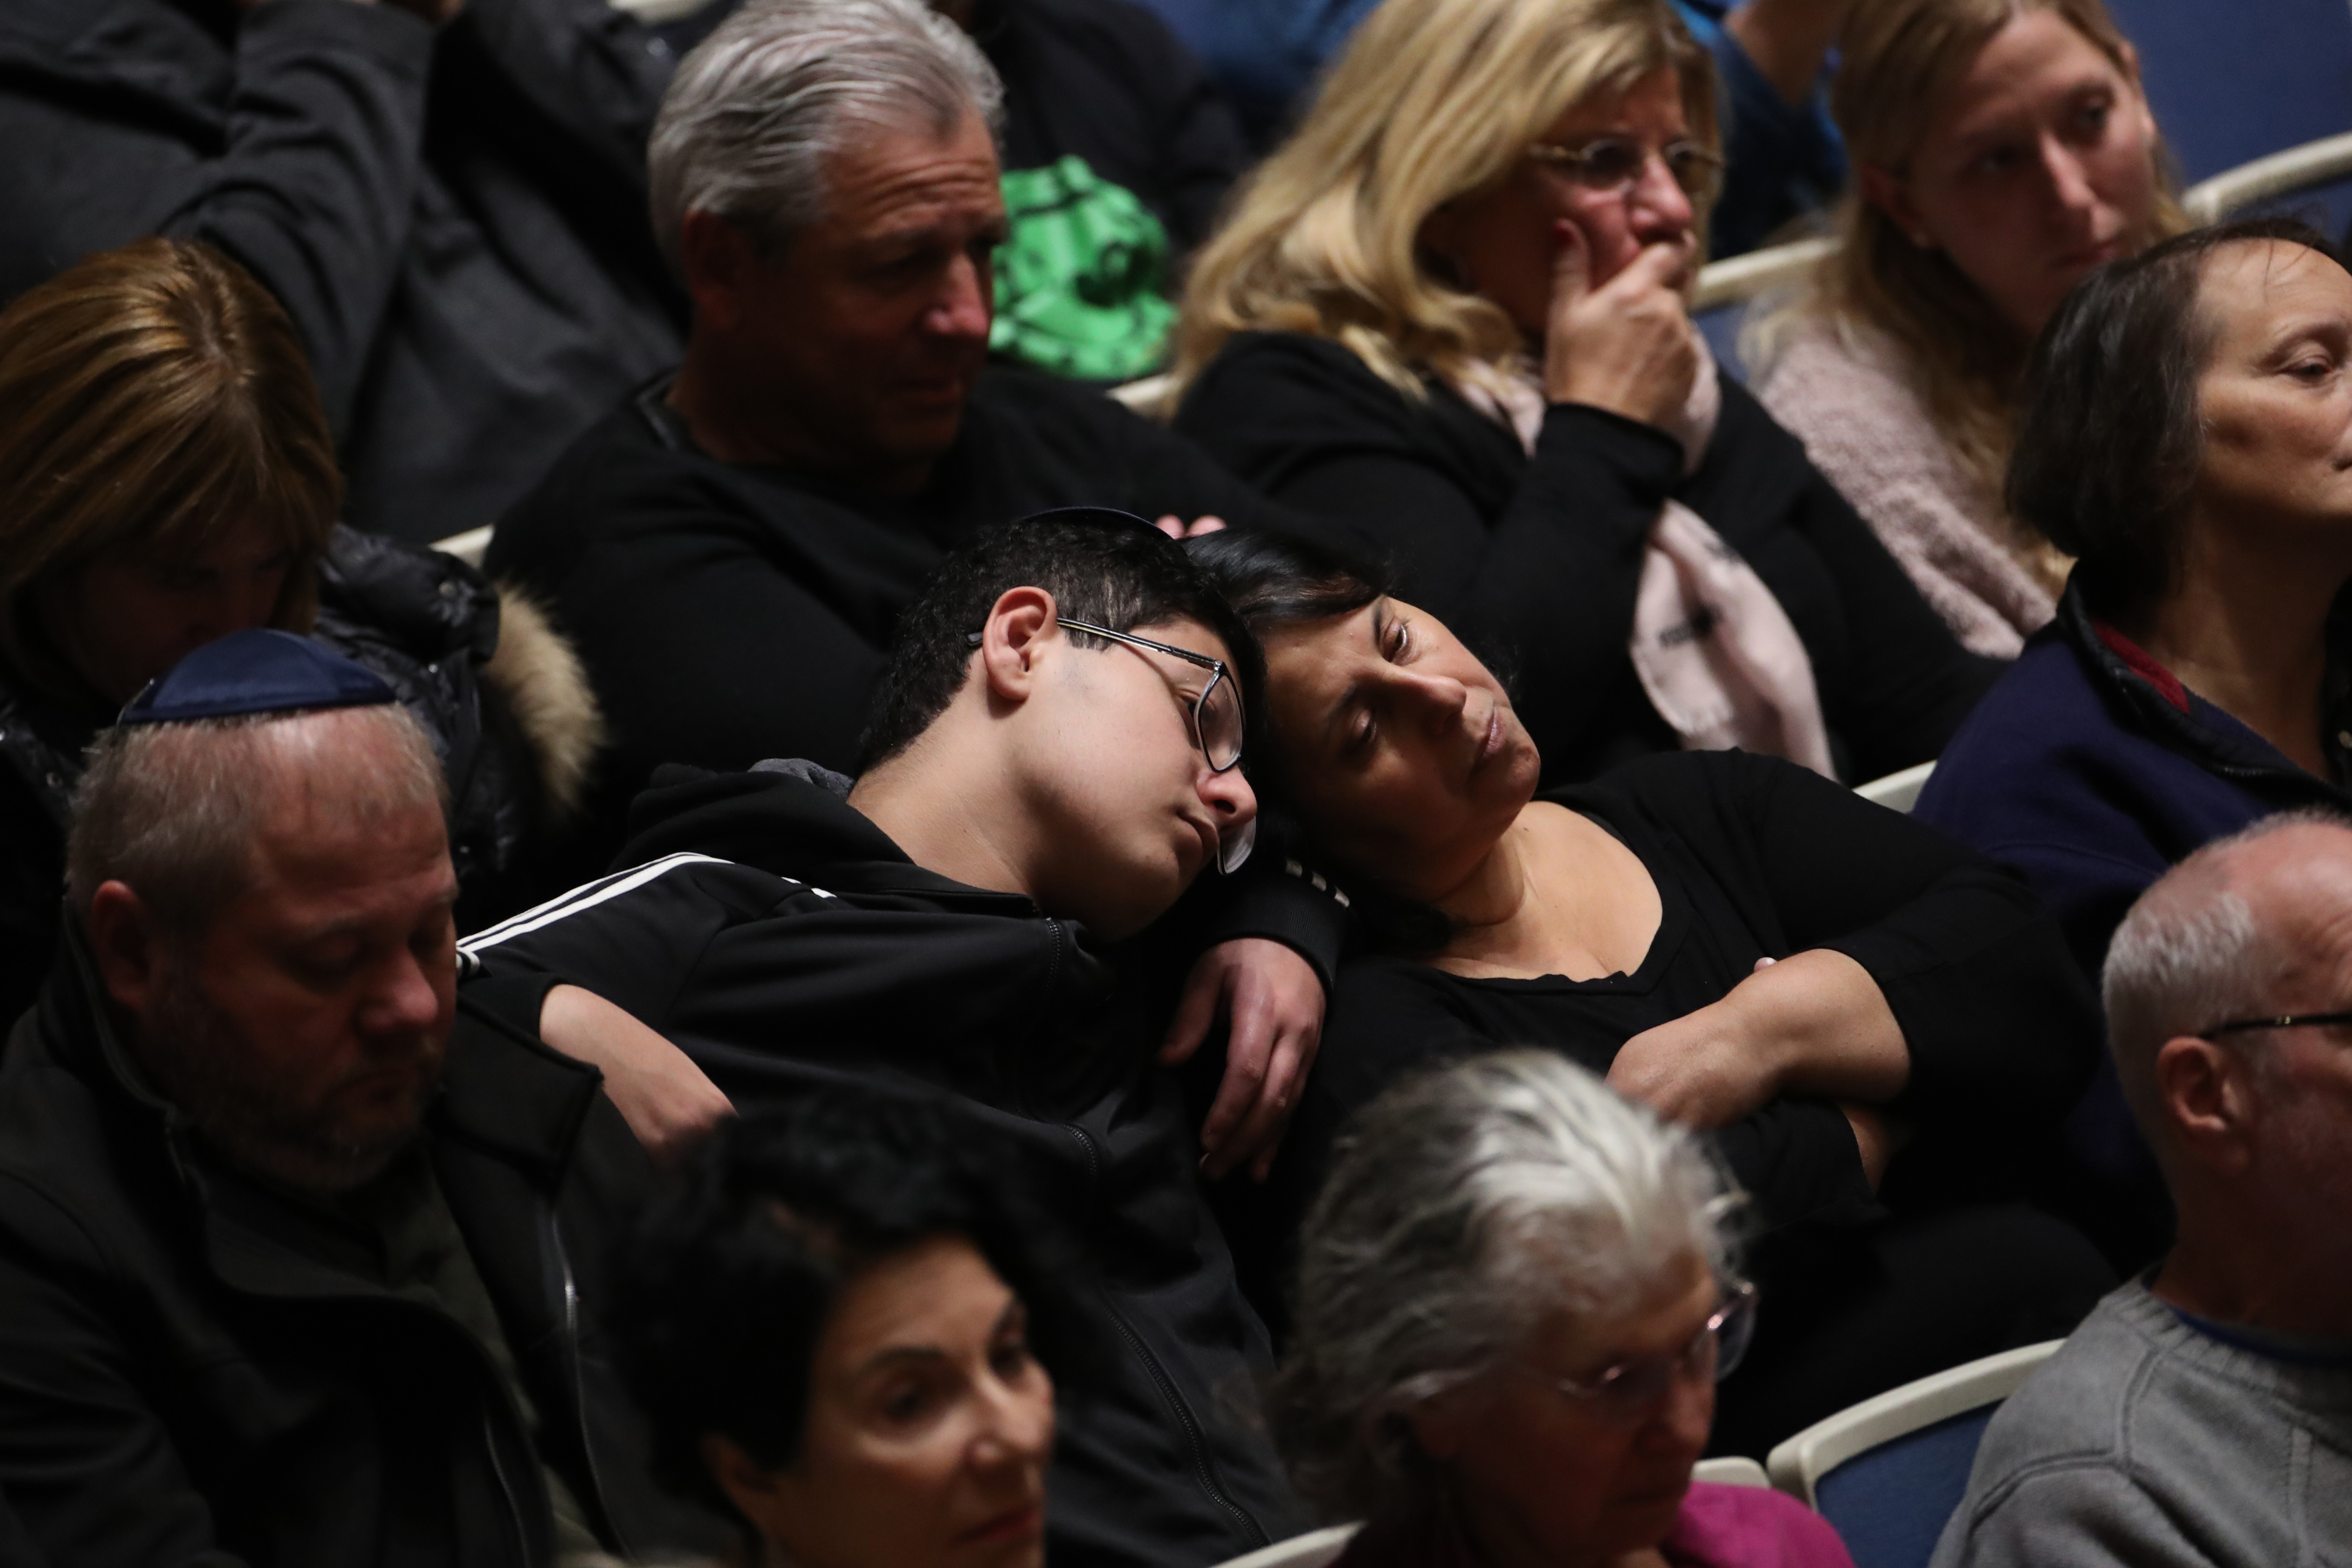 Mourners attend a memorial service at the Sailors and Soldiers Memorial Hall of the University of Pittsburgh, a day after 11 worshippers were shot dead at a Jewish synagogue in Pittsburgh, Pennsylvania, U.S., October 28, 2018. REUTERS/Cathal McNaughton